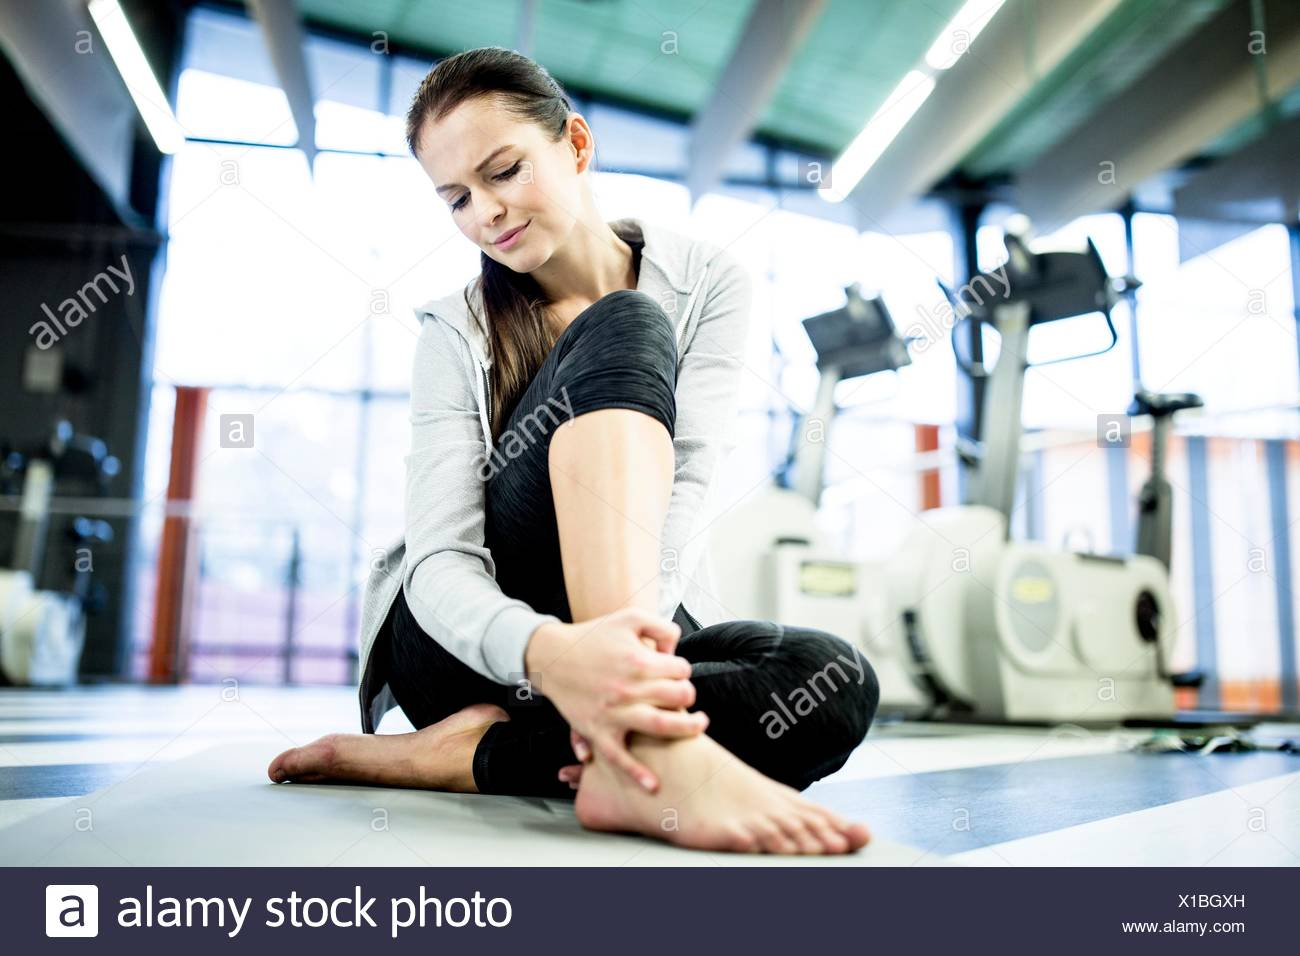 PROPERTY RELEASED. MODEL RELEASED. Young woman massaging ankle while having ankle pain in gym. - Stock Image